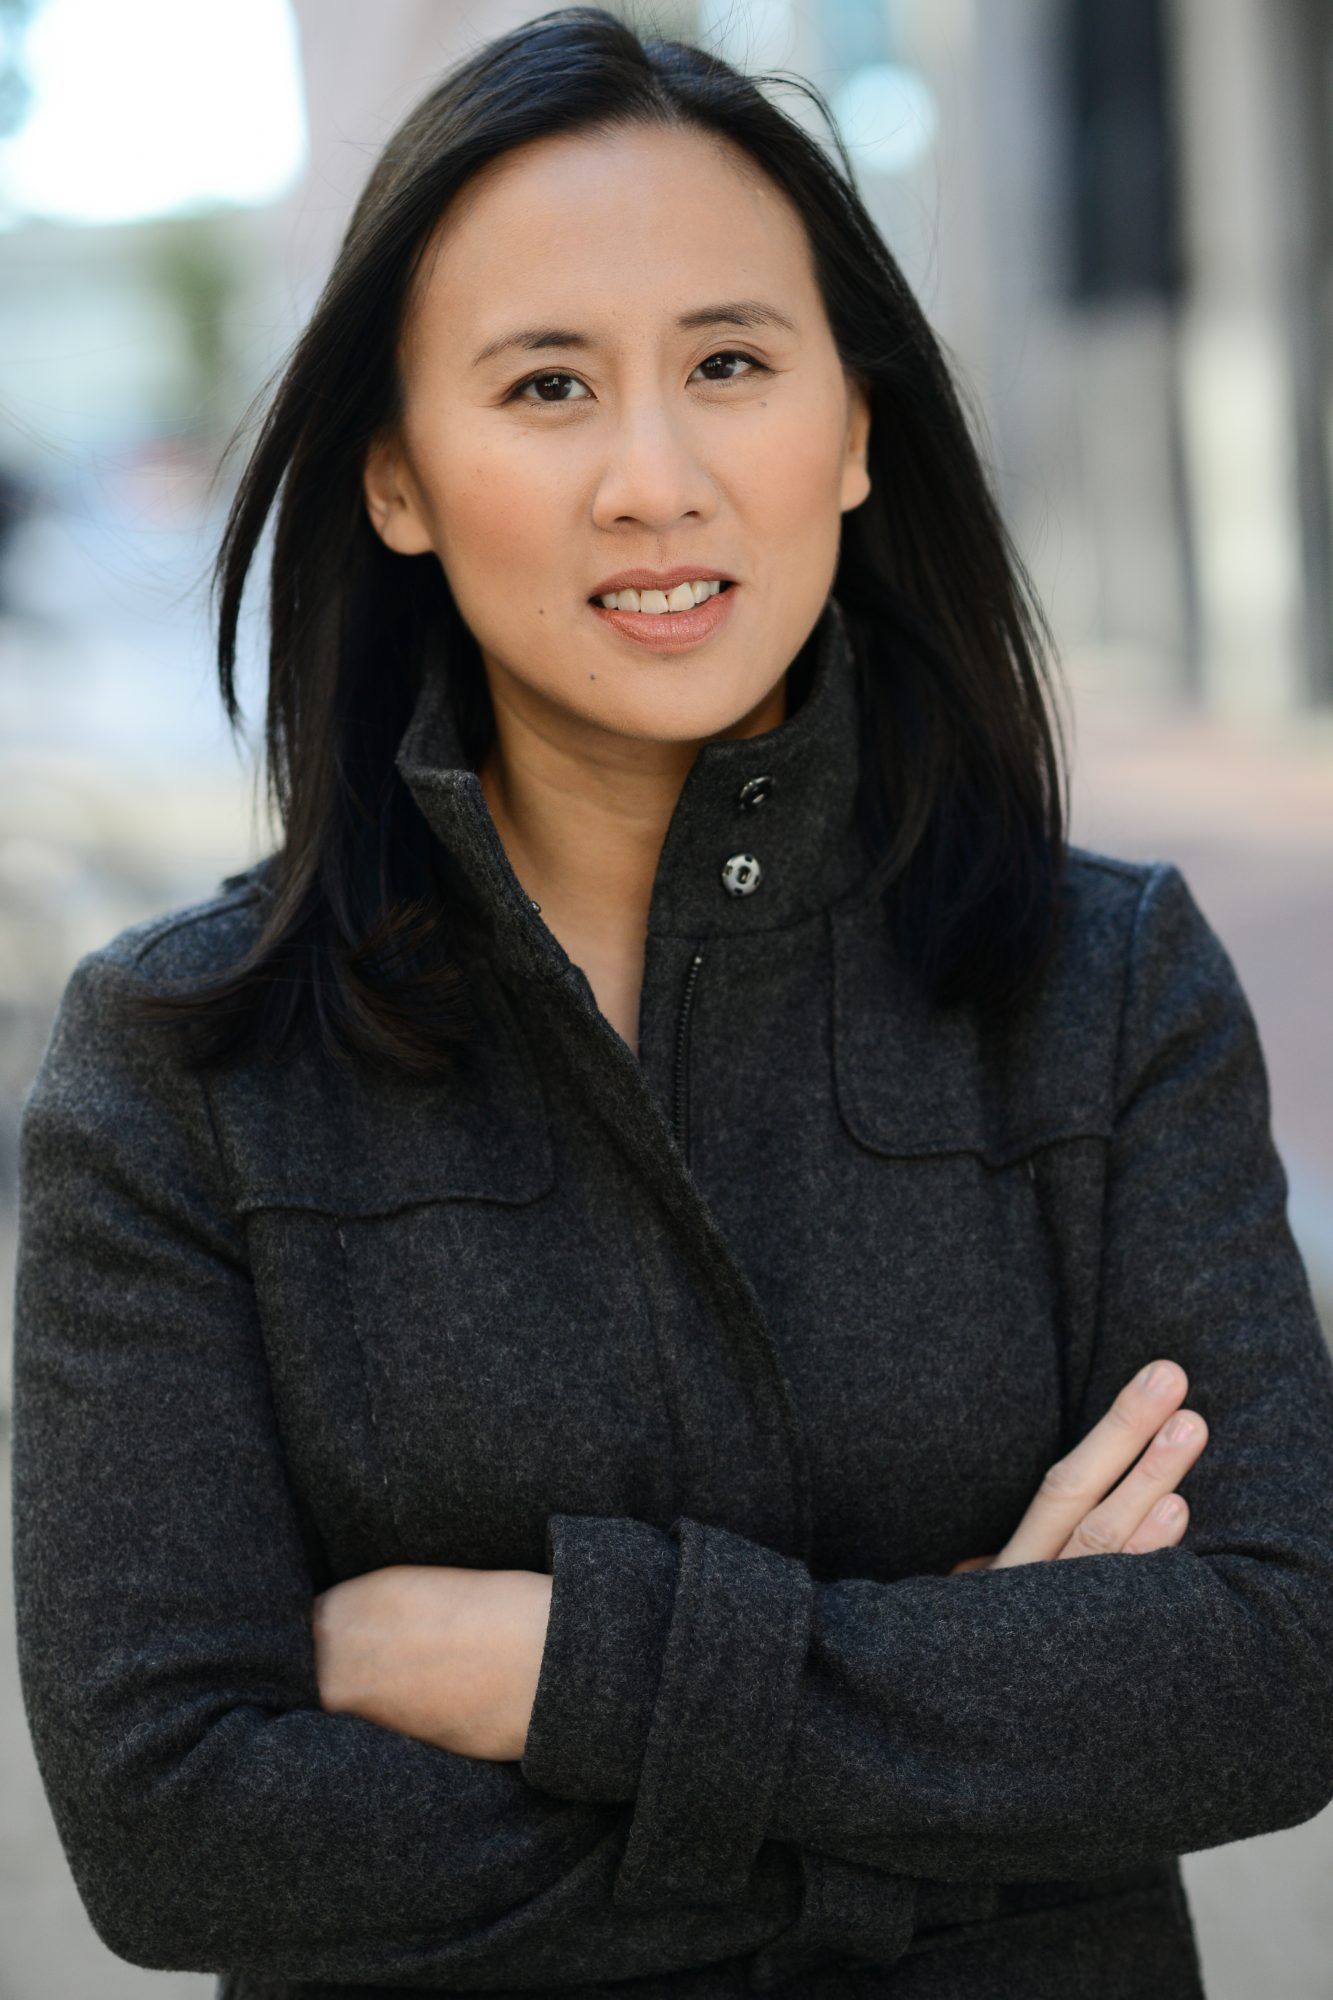 celeste-ng-c-kevin-day-photography